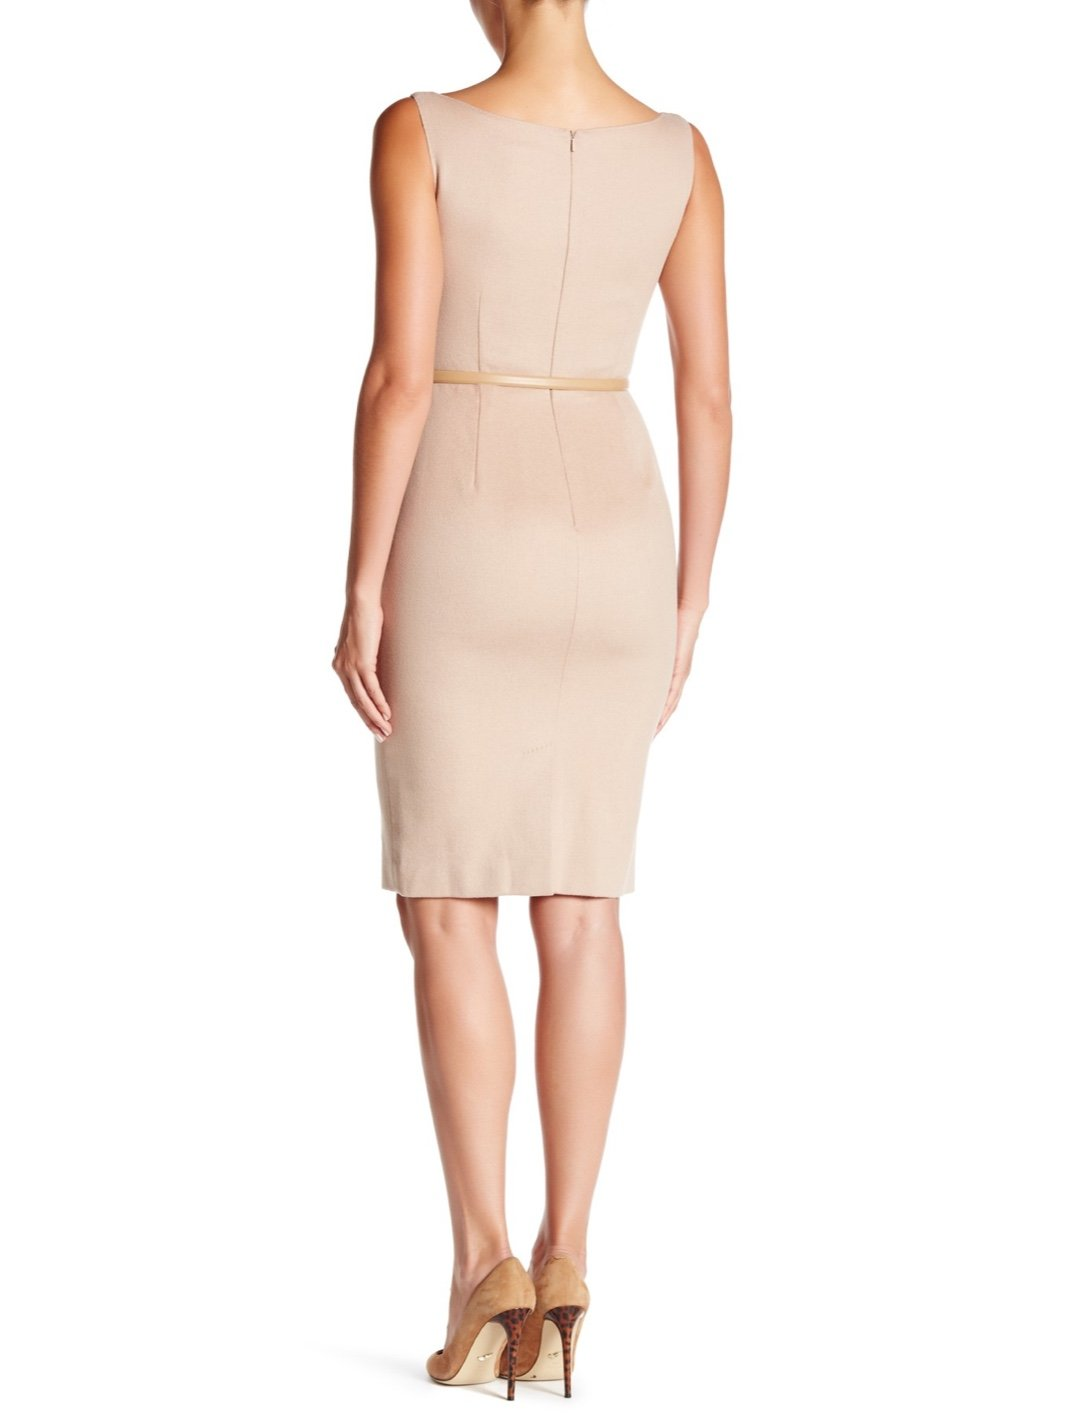 Colmo Wool Sheath Dress - The Bobby Boga